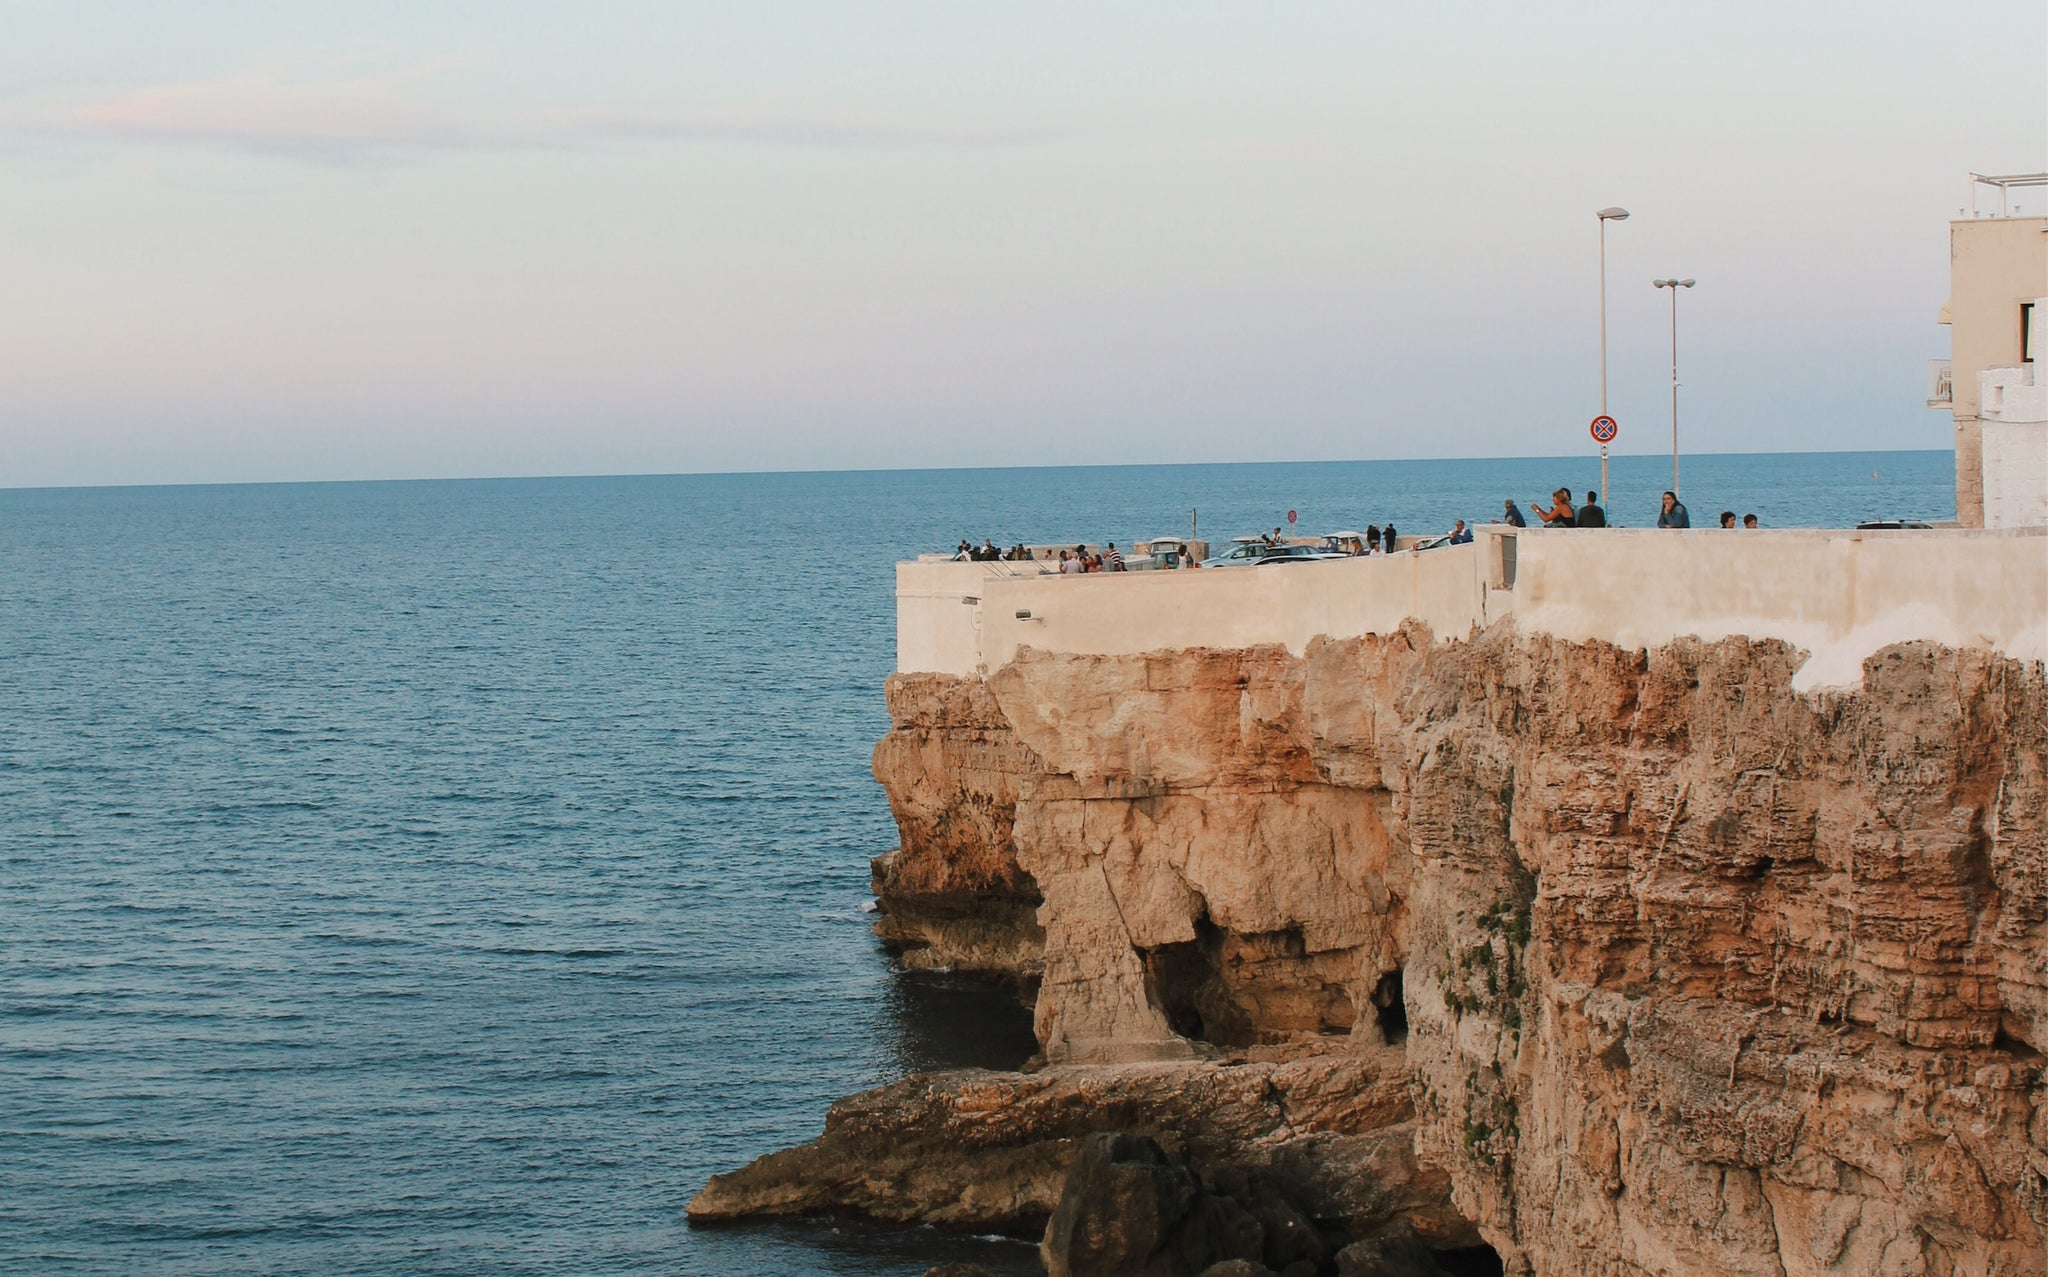 Travelogue : Summer in Italy | 南イタリアで過ごす夏 vol.3 - Polignano a mare